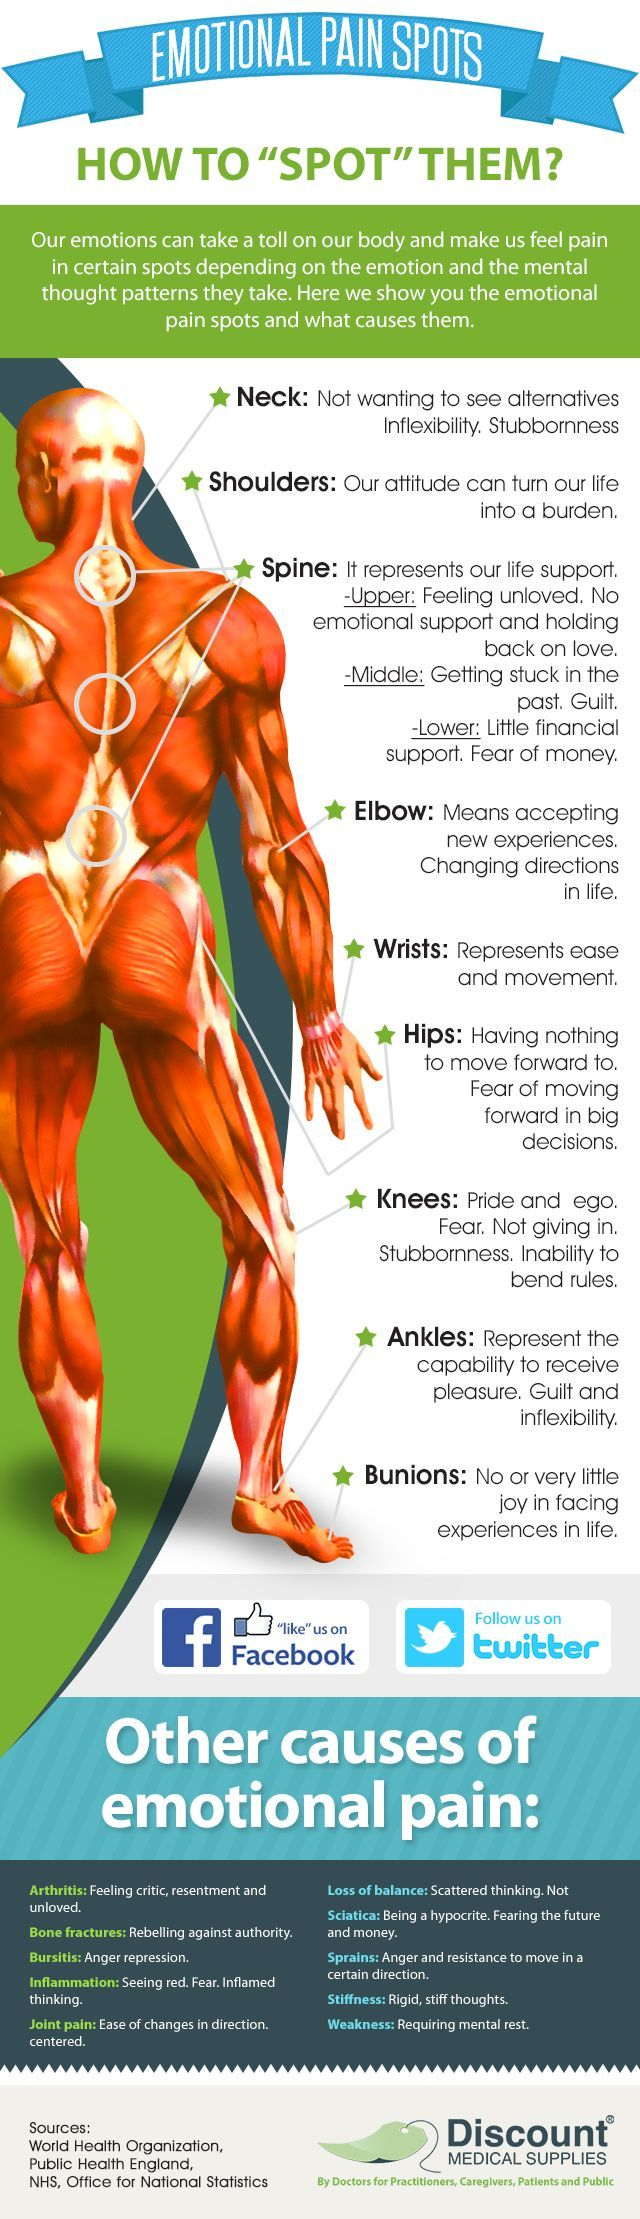 "Emotional Pain Spots... How to ""Spot"" them? #painrelief #painmanagement http://www.discountmedicalsupplies.com/doctors/health-news/positive-vs-negative-how-both-affect-our-health"